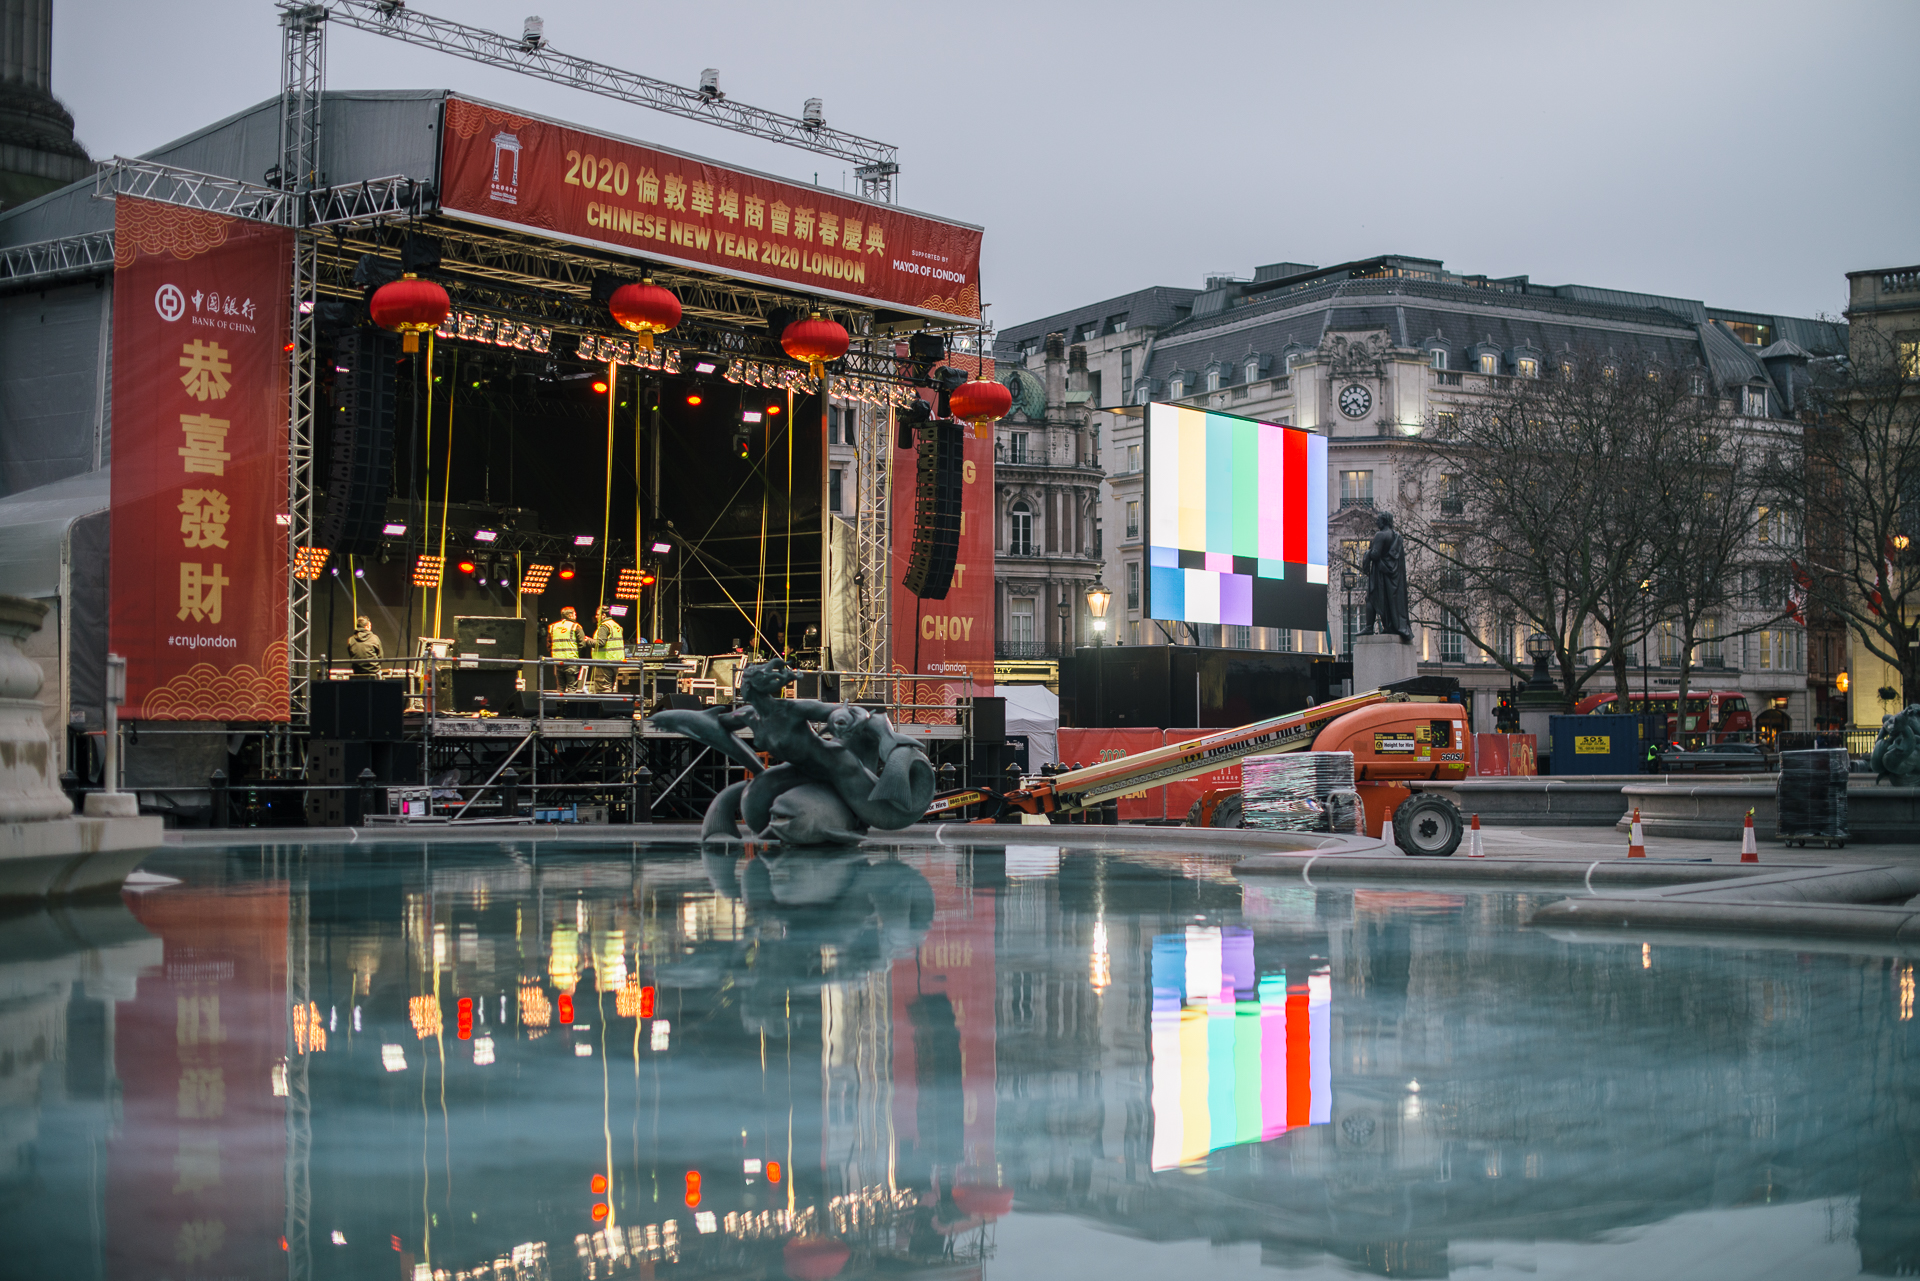 chinese new year stage at trafalgar square london